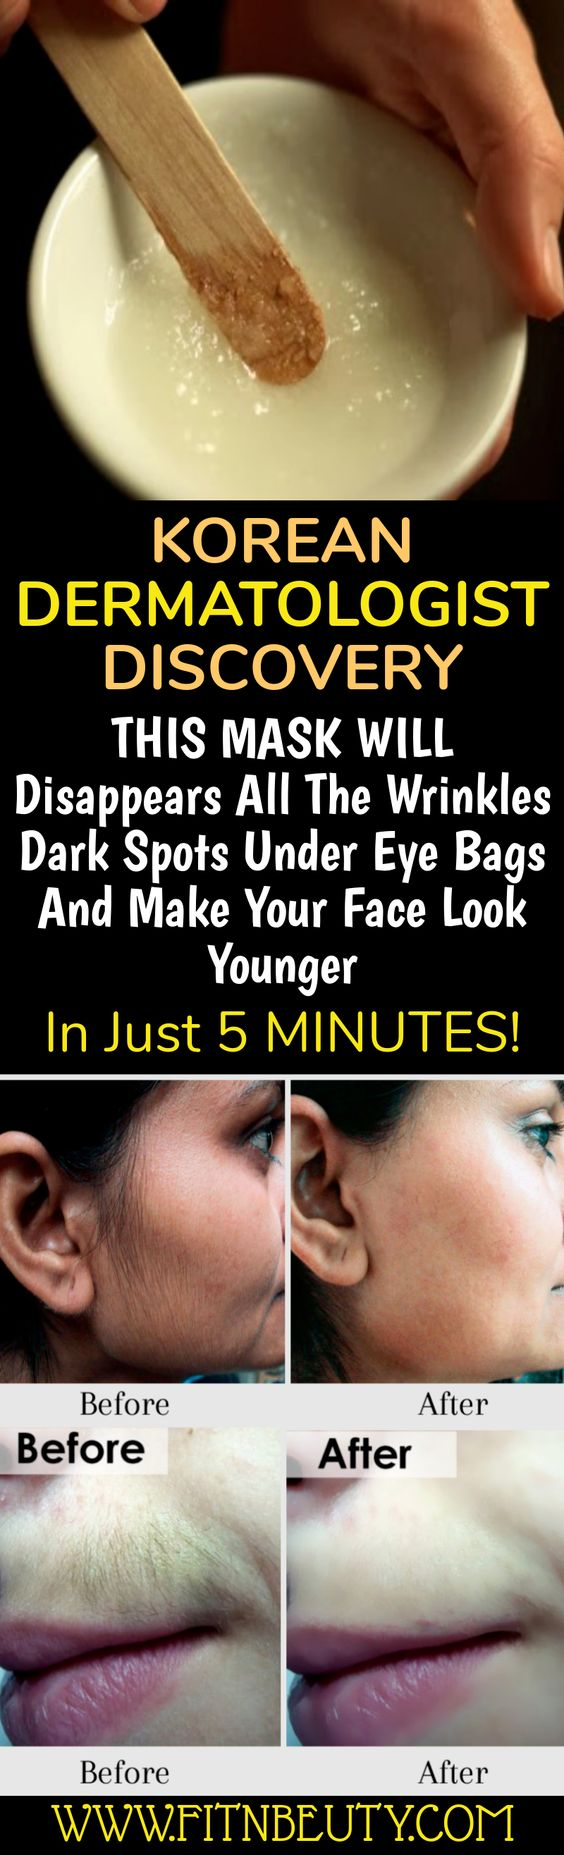 KOREAN DERMATOLOGIST DISCOVERY THIS MASK WILL Disappears All The Wrinkles Dark Spots Under Eye Bags And Make Your Face Look Younger In Just 5 MINUTES!